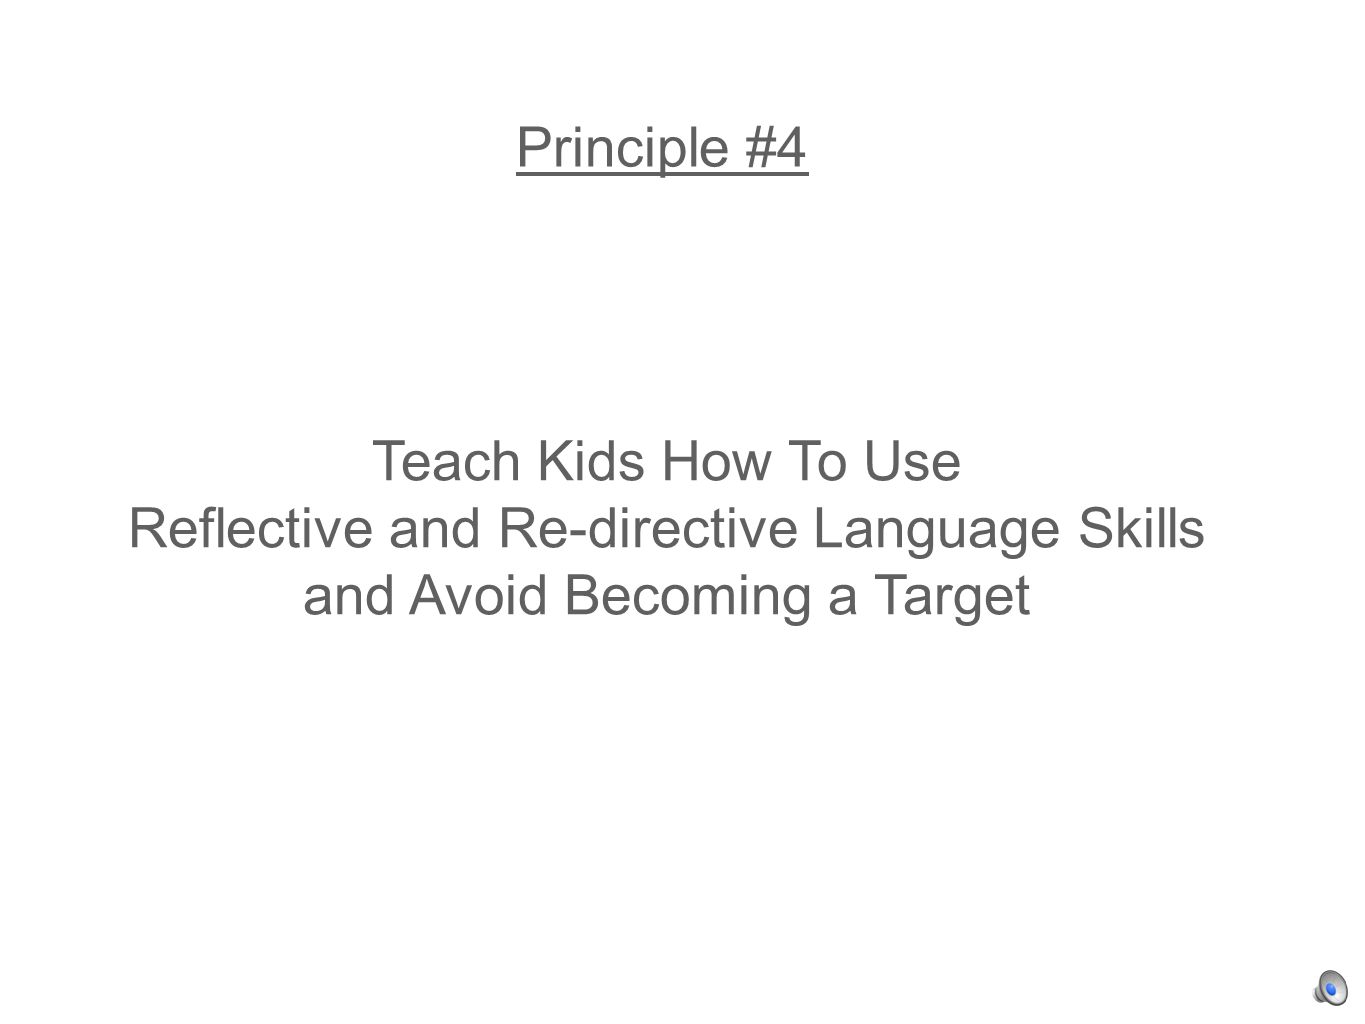 Principle #4 Teach Kids How To Use Reflective and Re-directive Language Skills and Avoid Becoming a Target